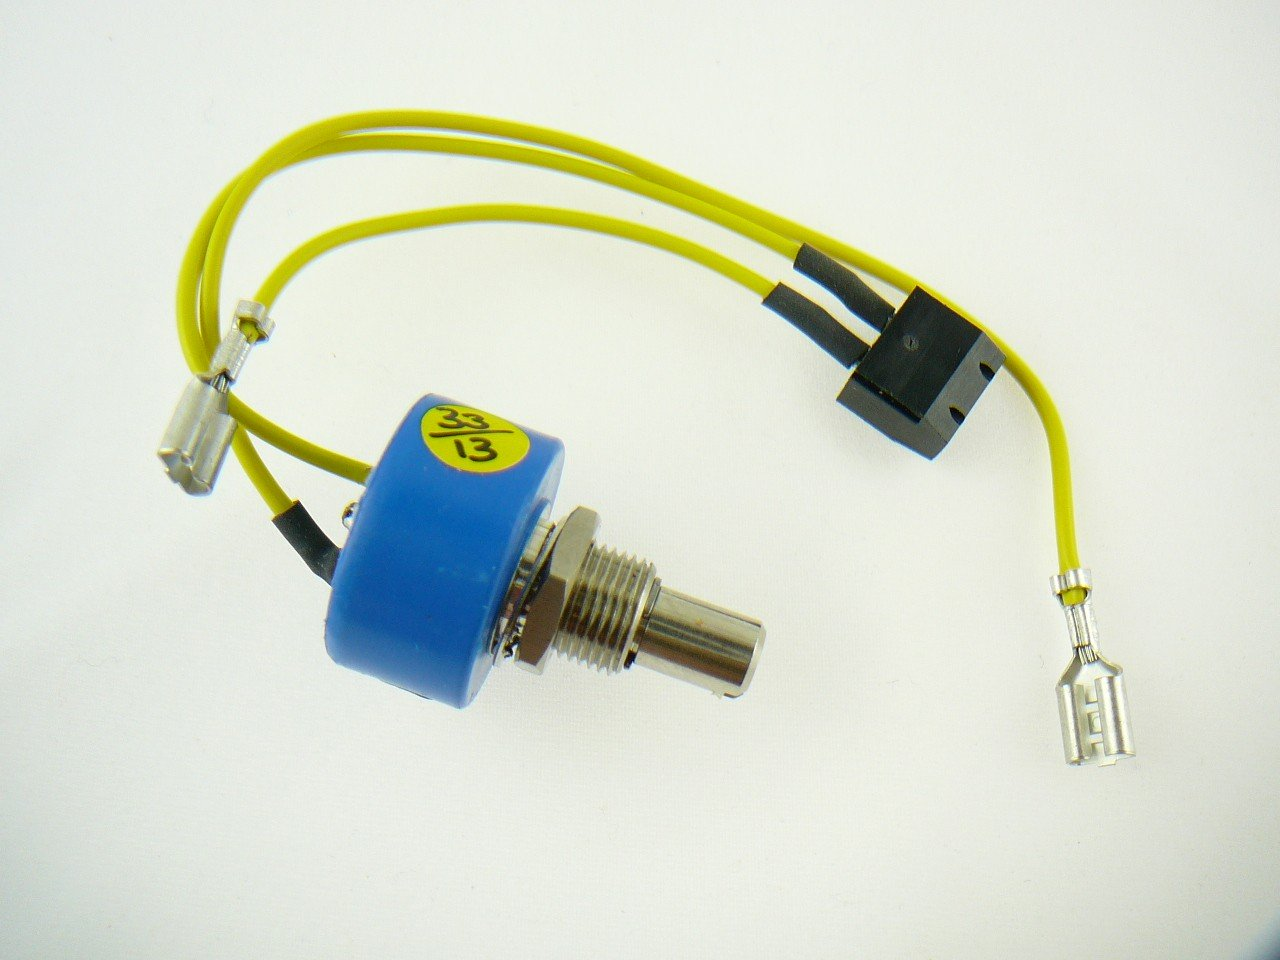 p1070495 golf gear deals replacement parts for powakaddy robbies golf gear Potentiometer Motor Wiring Diagram at aneh.co